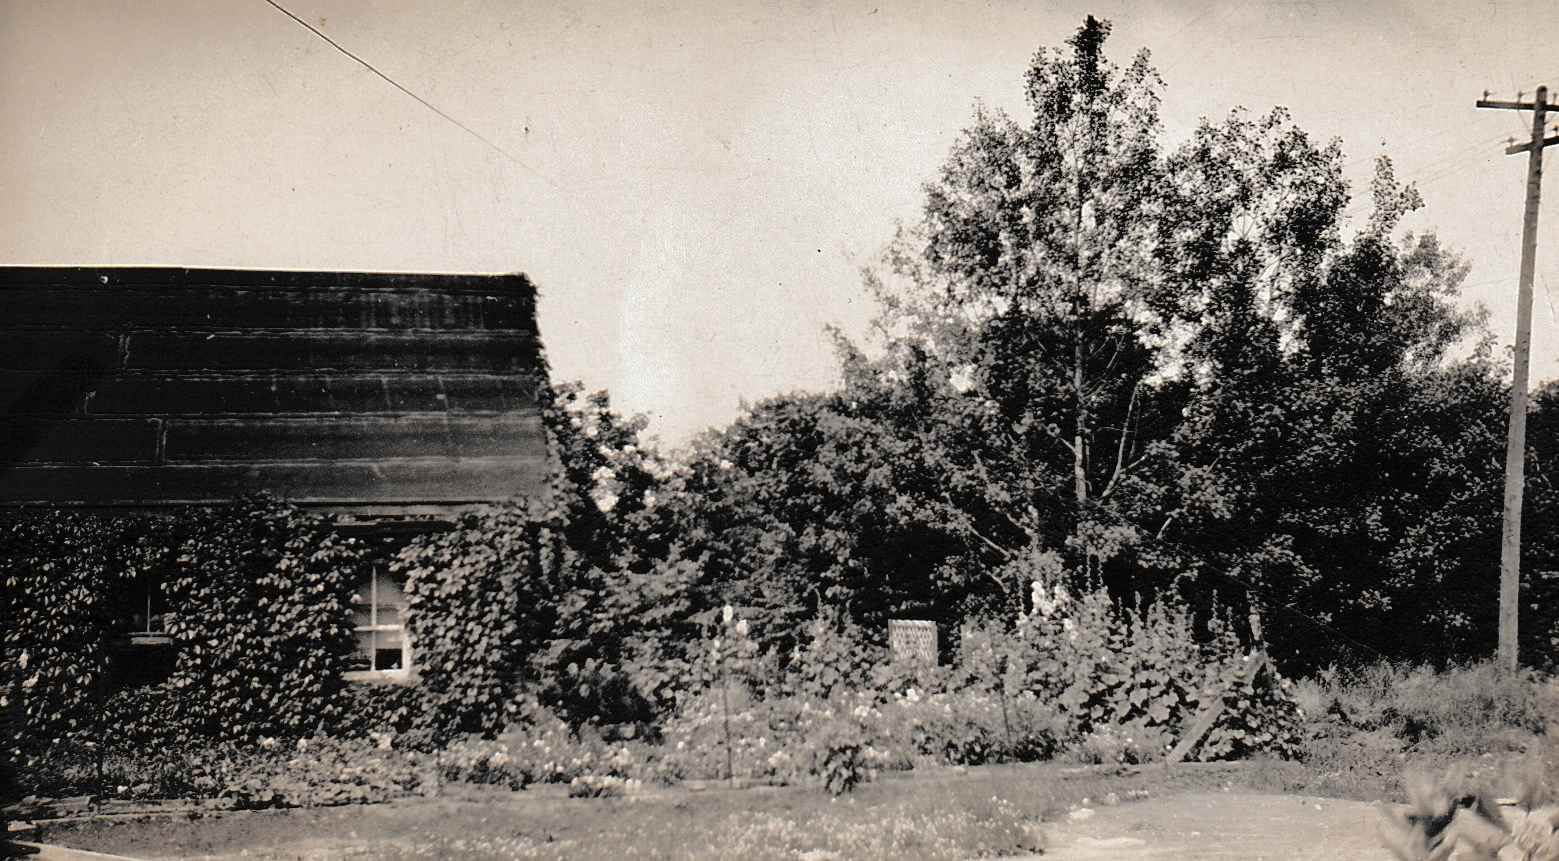 1920 early lab building, turned into a garden by Mr. Riggs